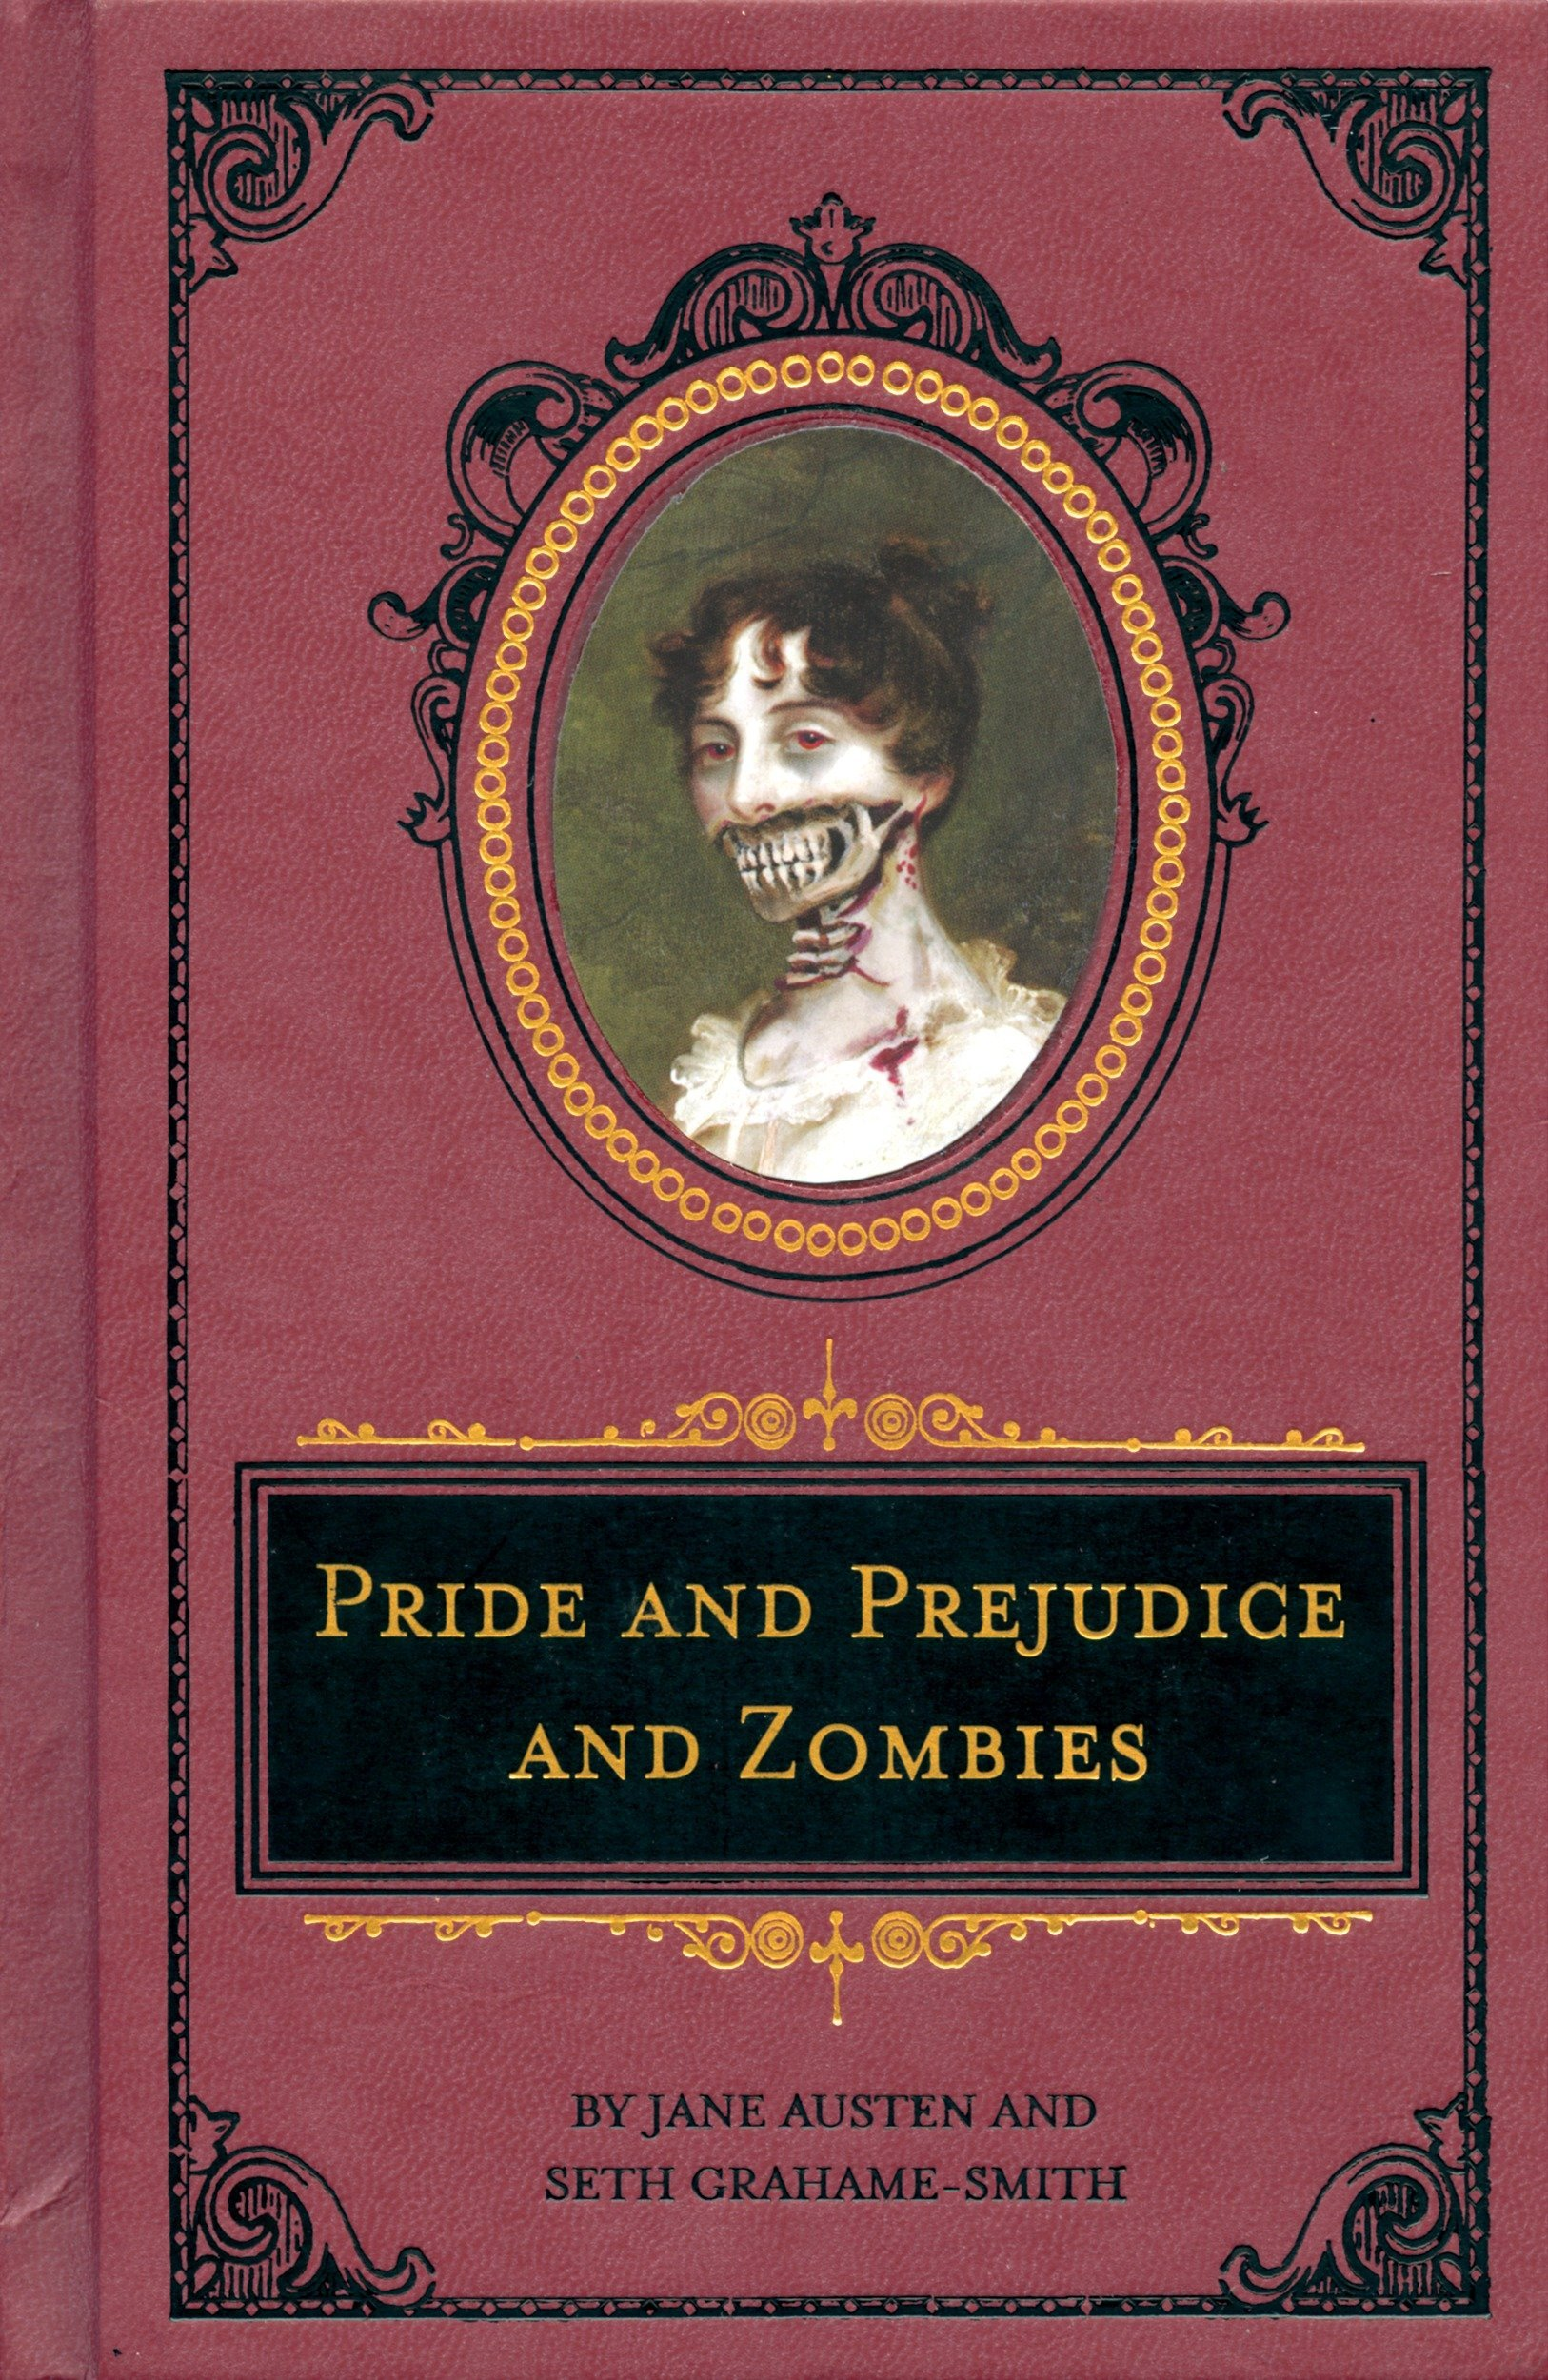 book review of pride and prejudice in 200 words